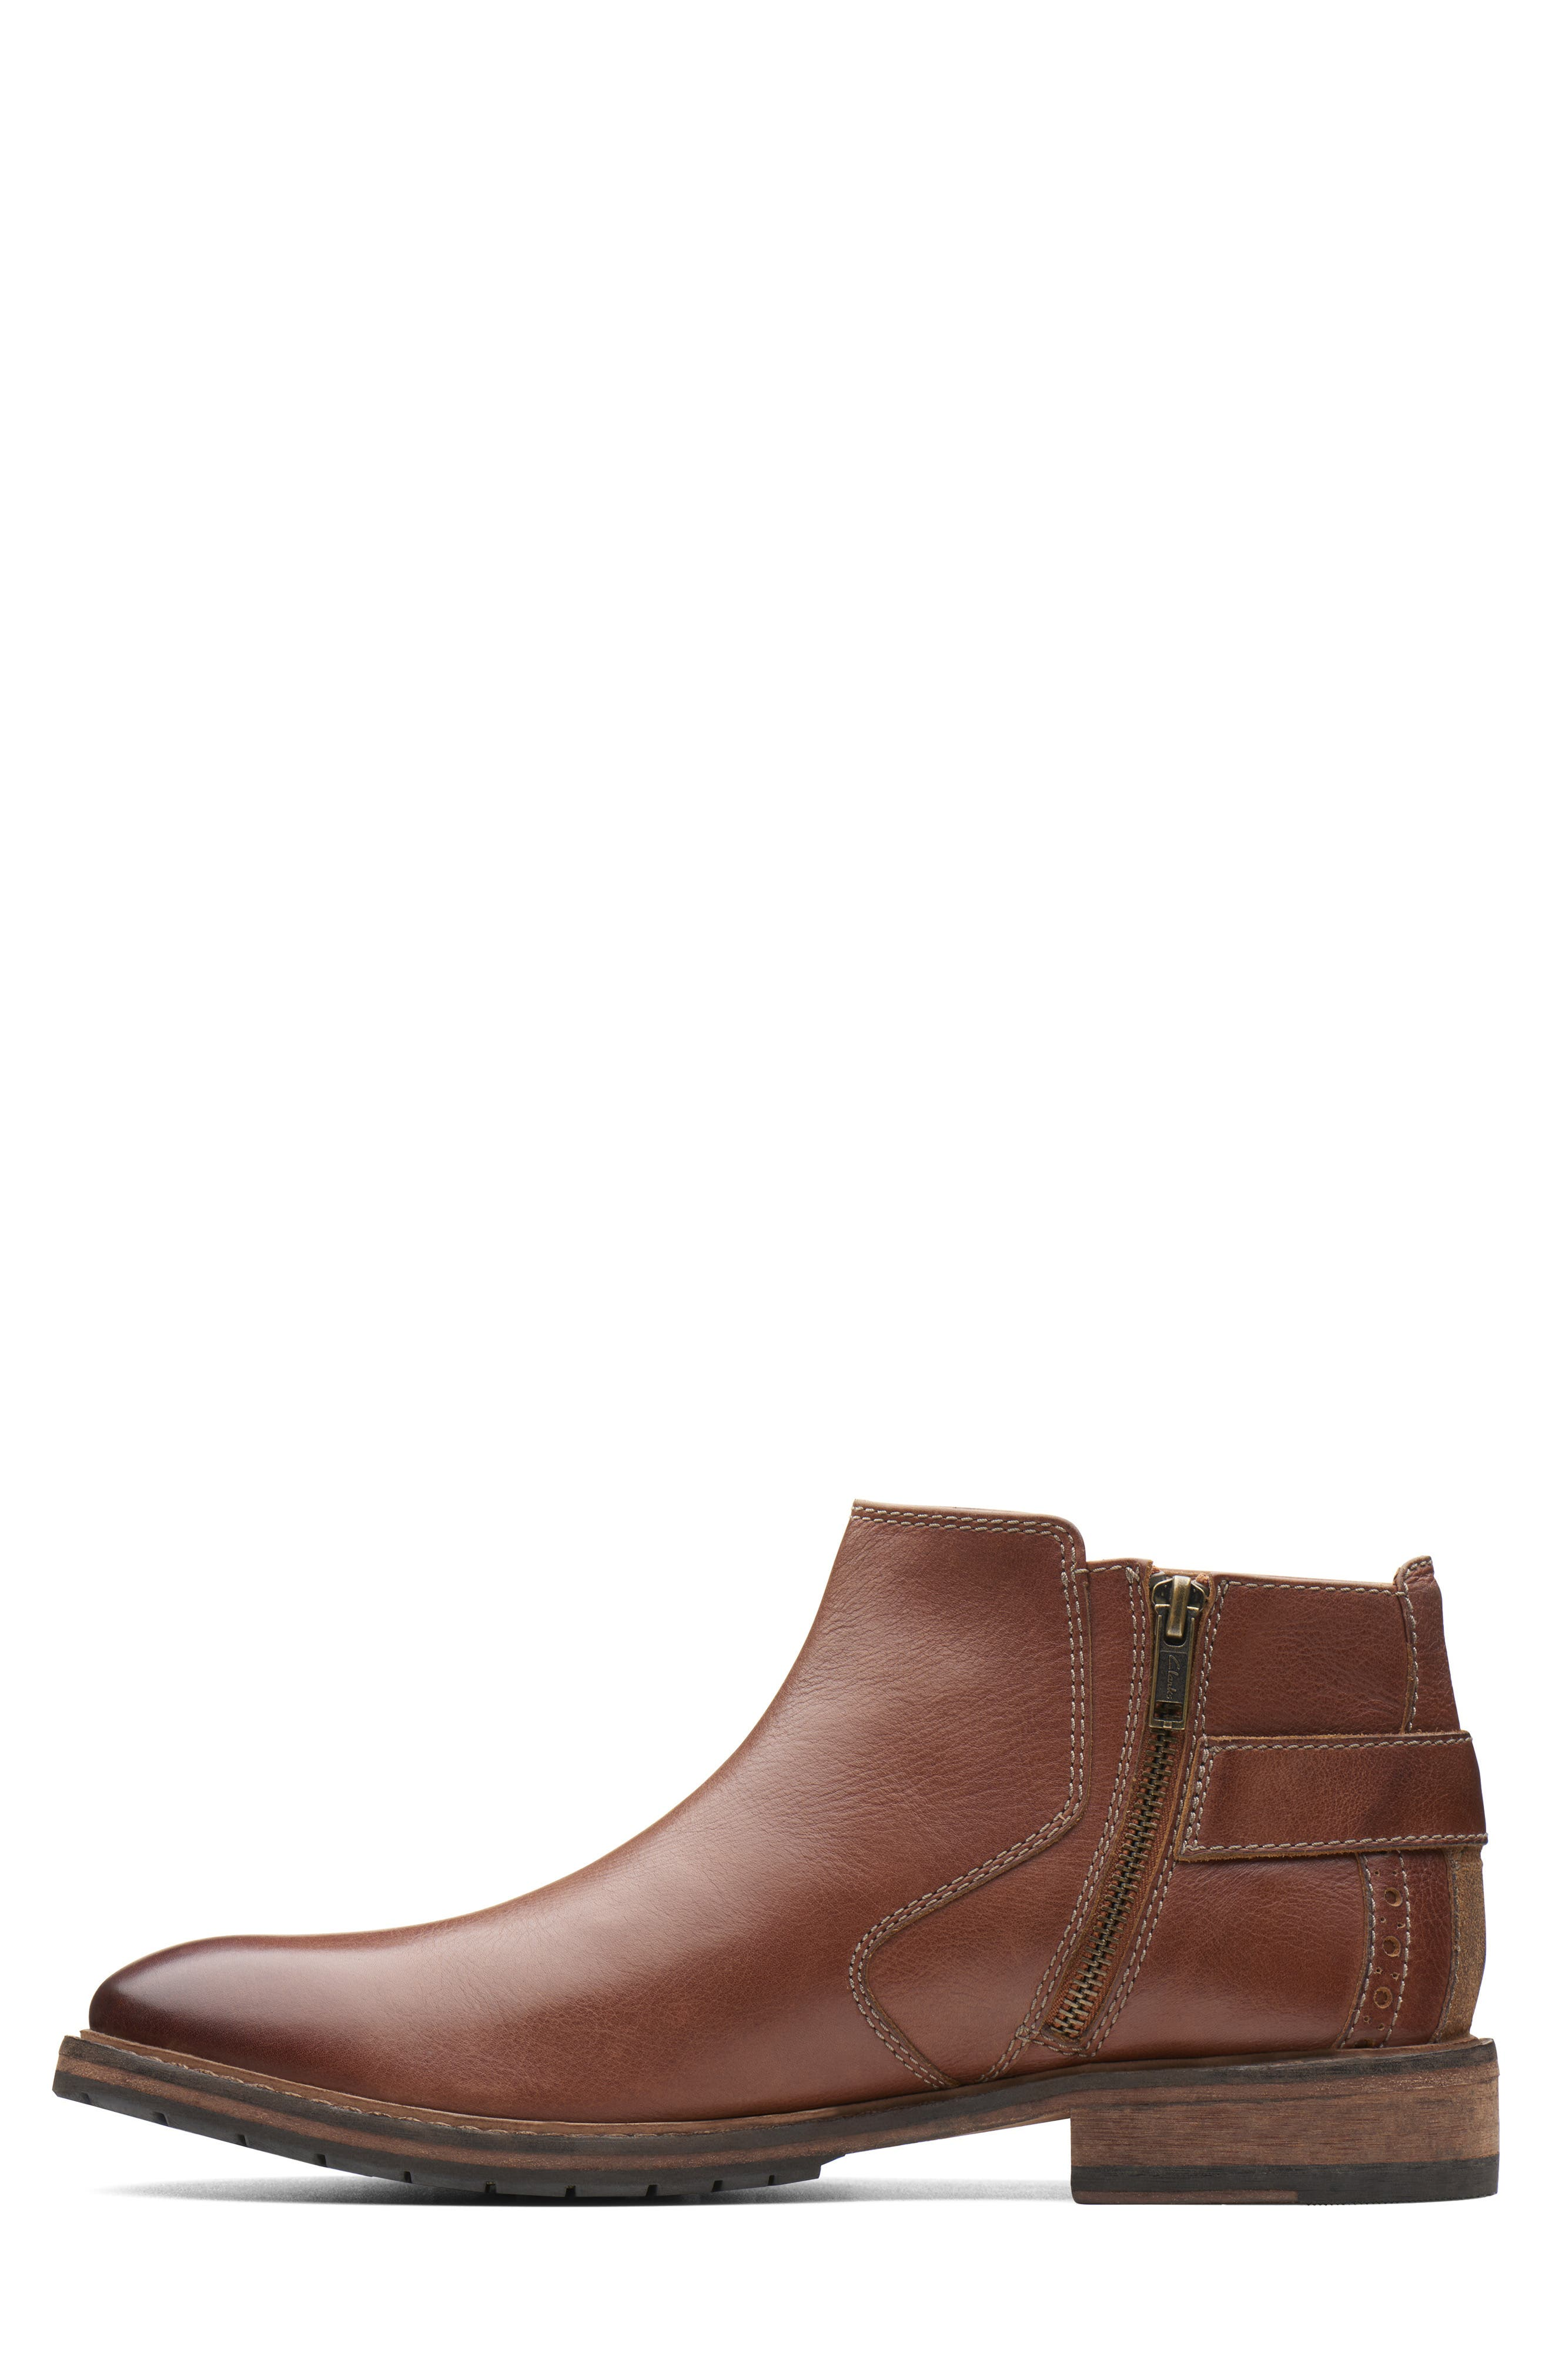 Clarkdale Remi Ankle Boot,                             Alternate thumbnail 7, color,                             DARK TAN LEATHER